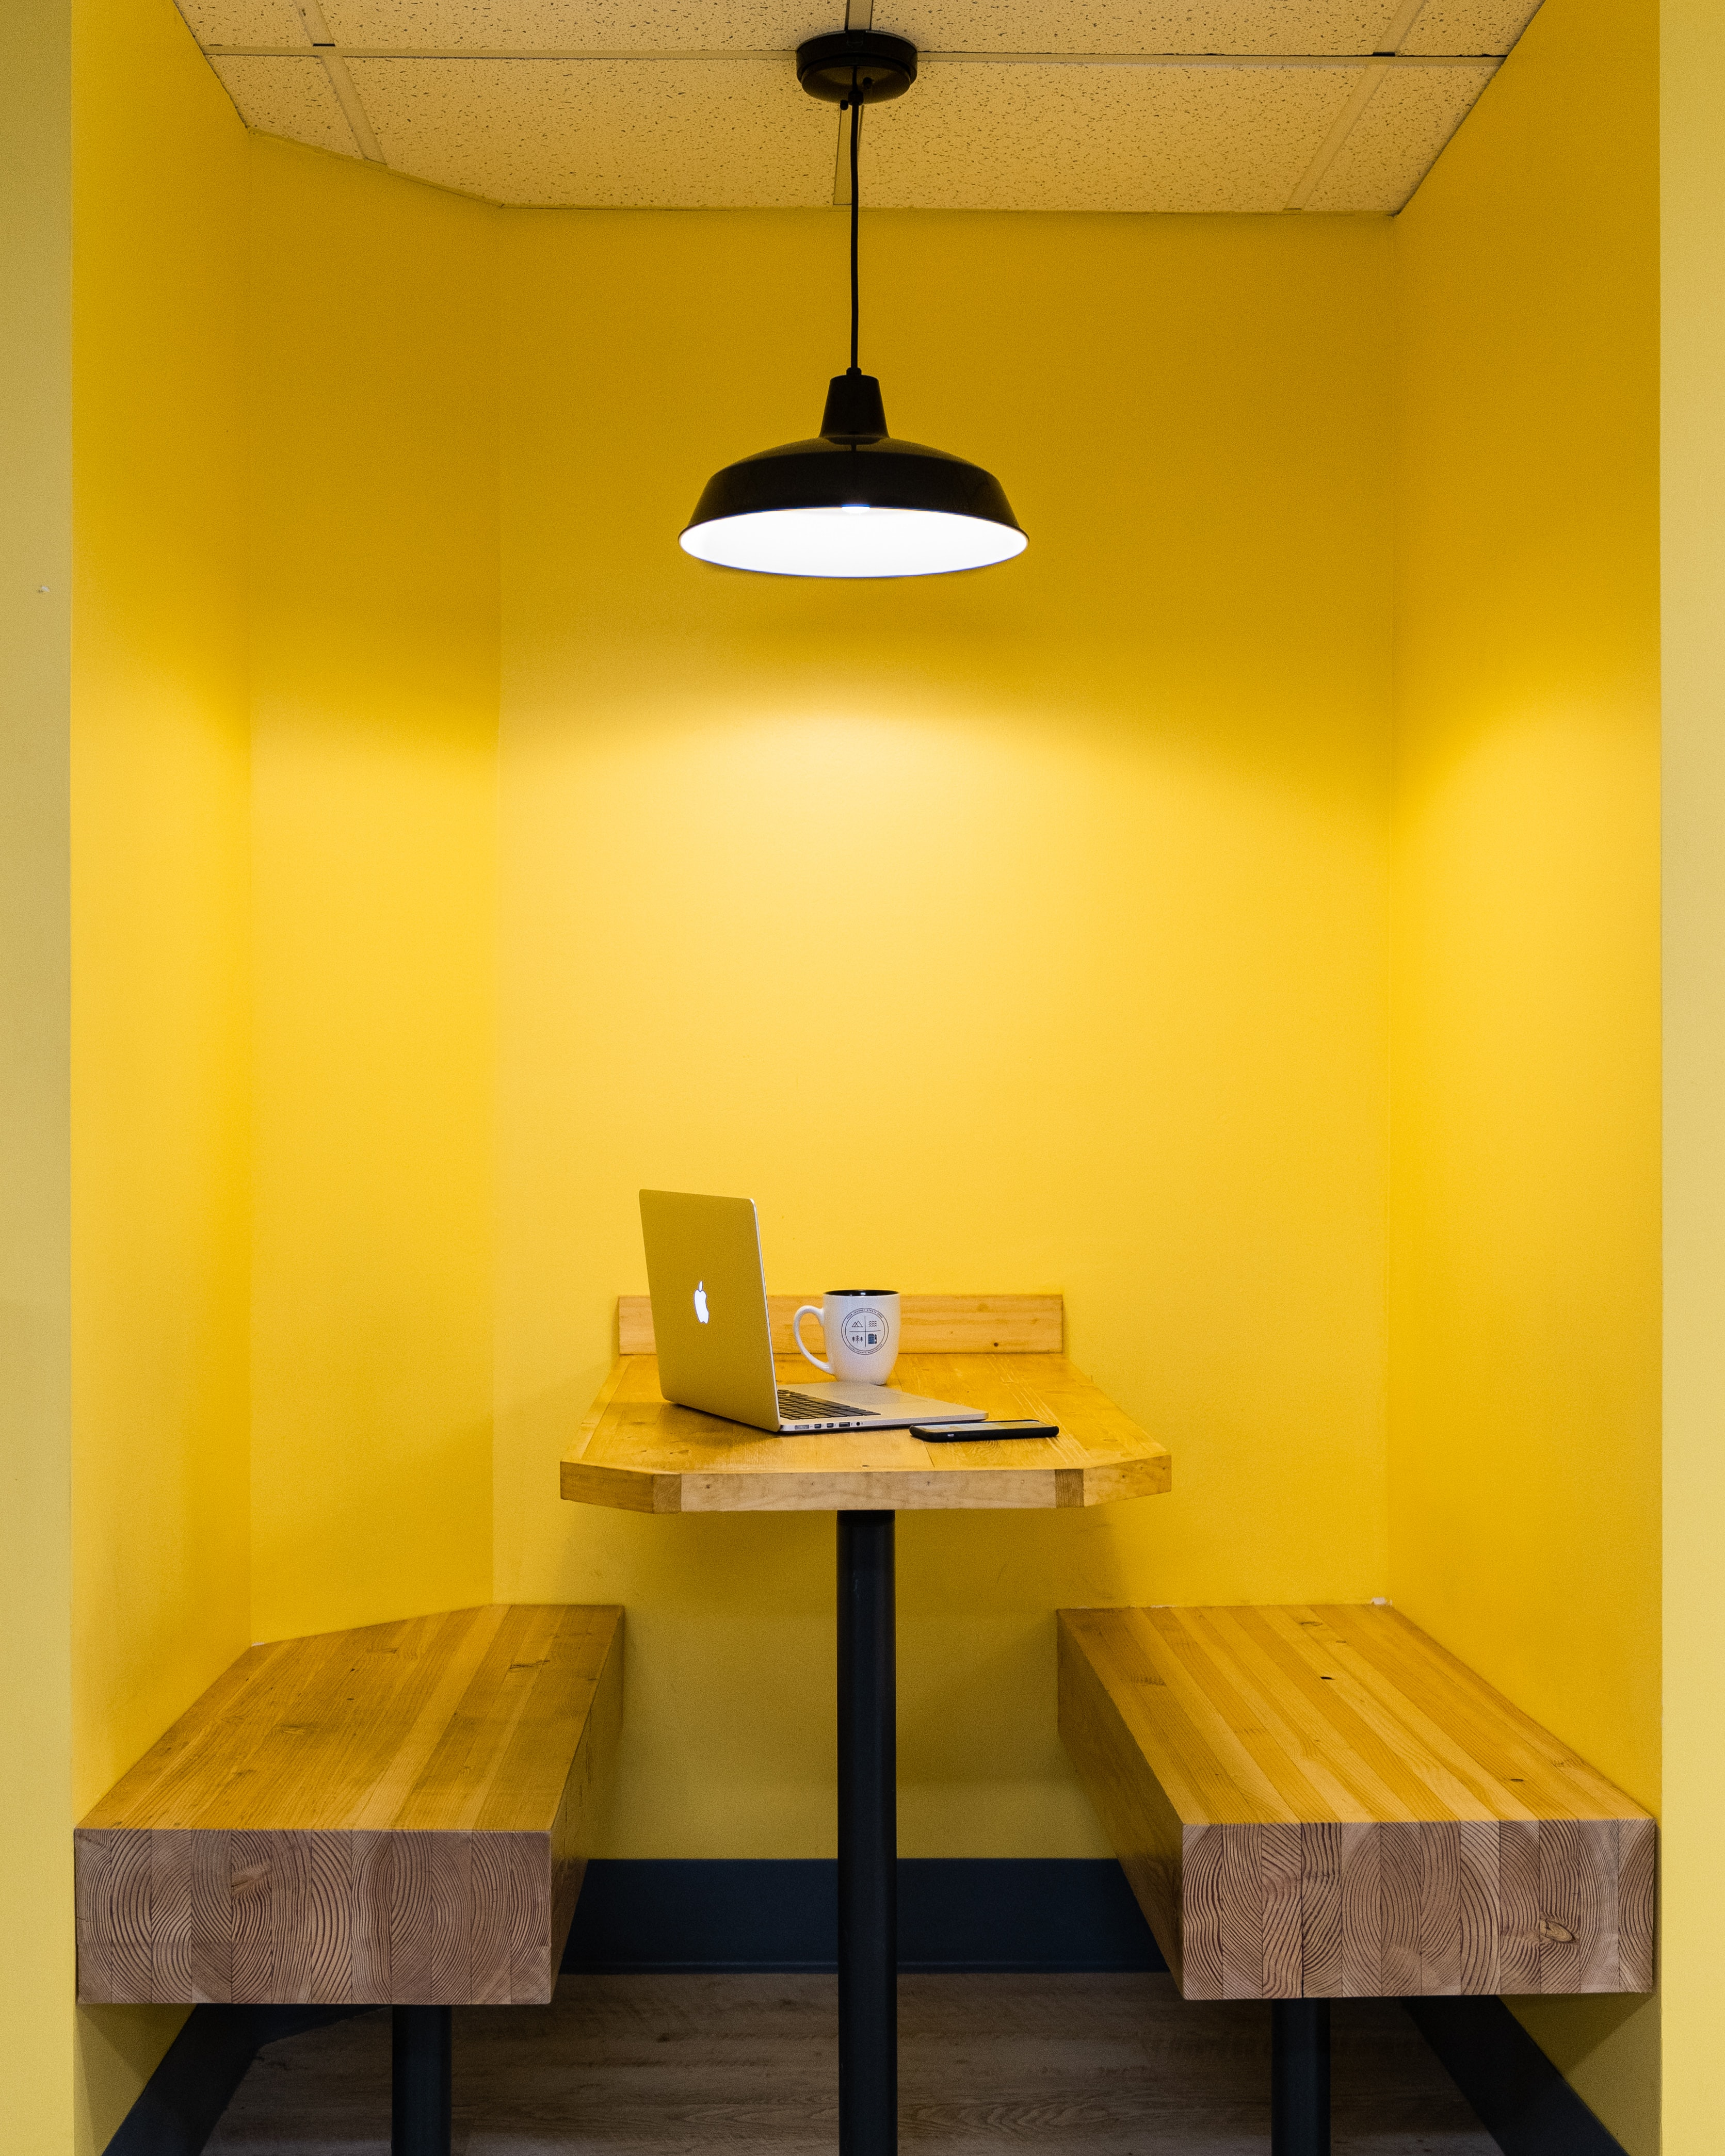 turned on pendant lamp on brown wooden table